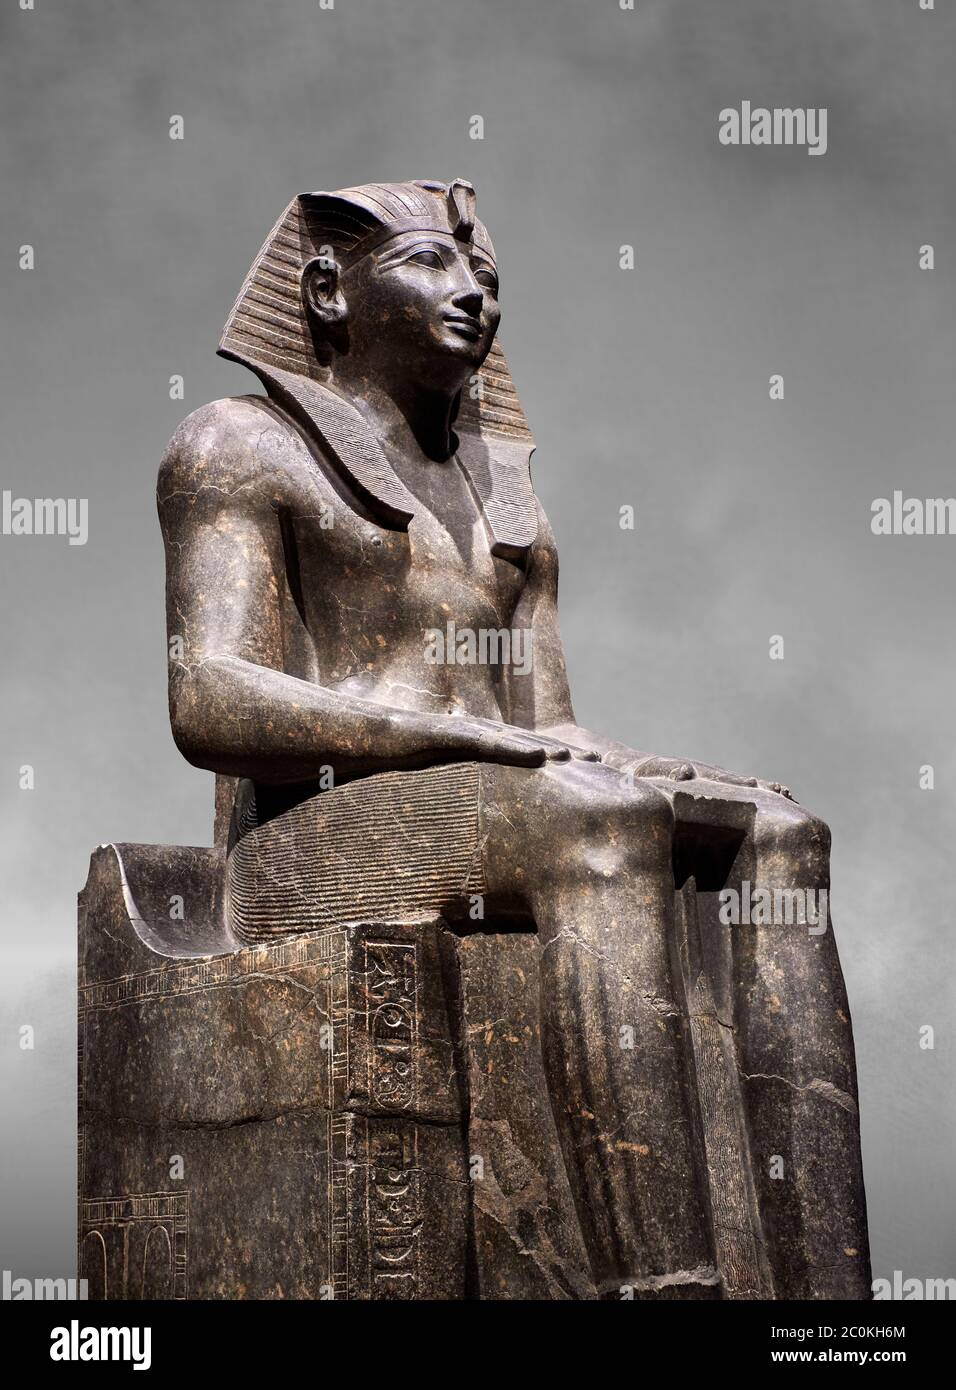 Ancient Egyptian statue of Tuthmosis II, granodorite, New Kingdom, 18th Dynasty, (1479-1425 BC), Karnak, Temple of Amun. Egyptian Museum, Turin. Grey Stock Photo